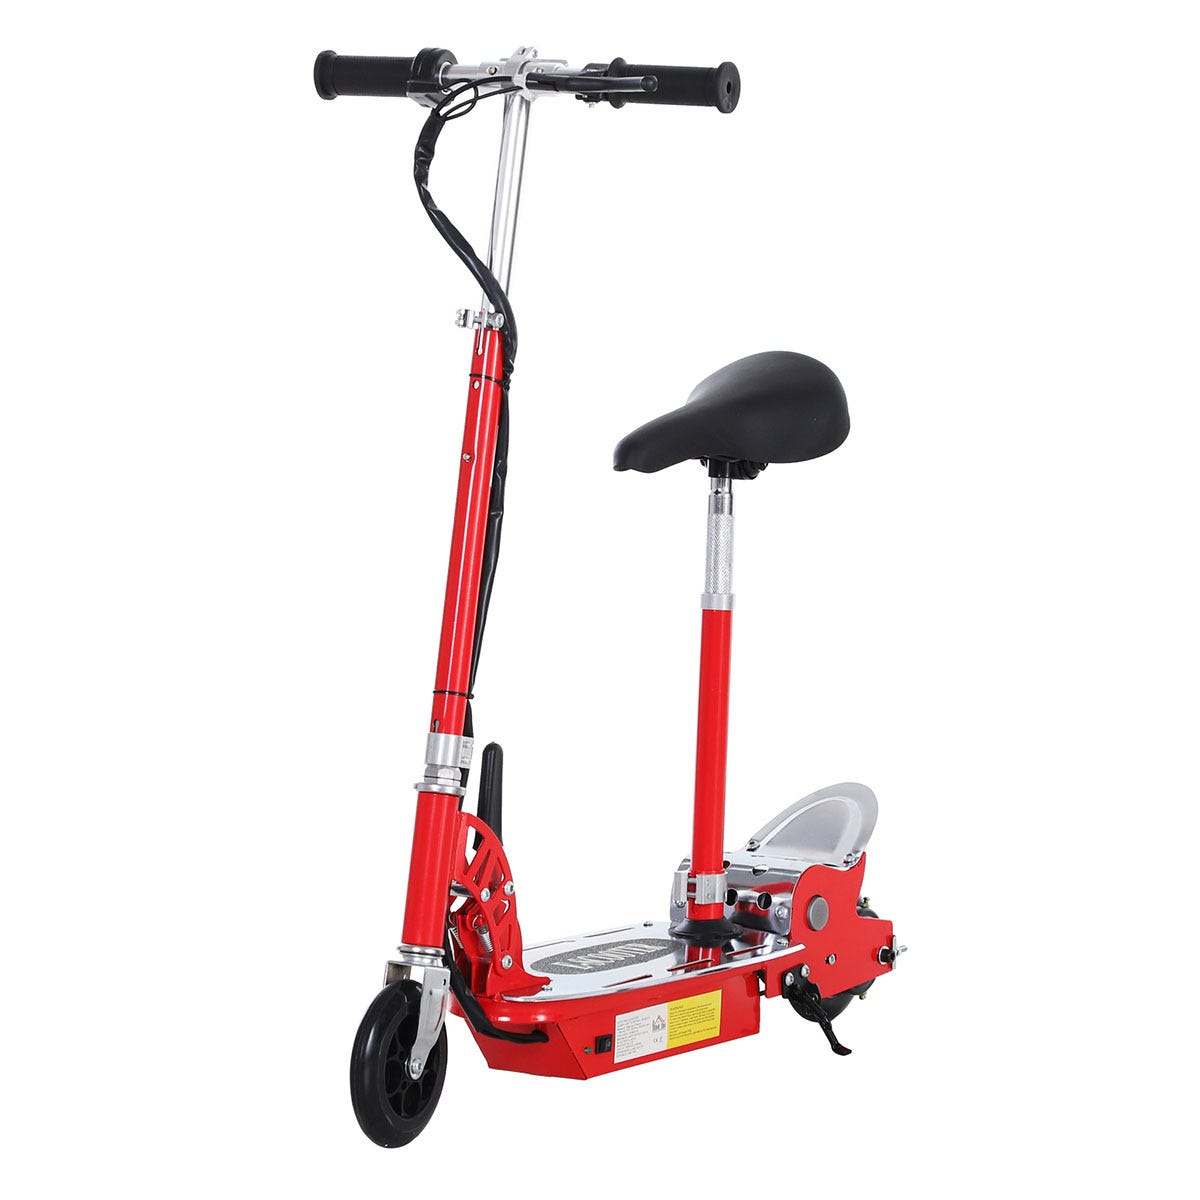 Reiten Teen Foldable E-Scooter Electric Battery 12V 120W with Brake Kickstand - Red